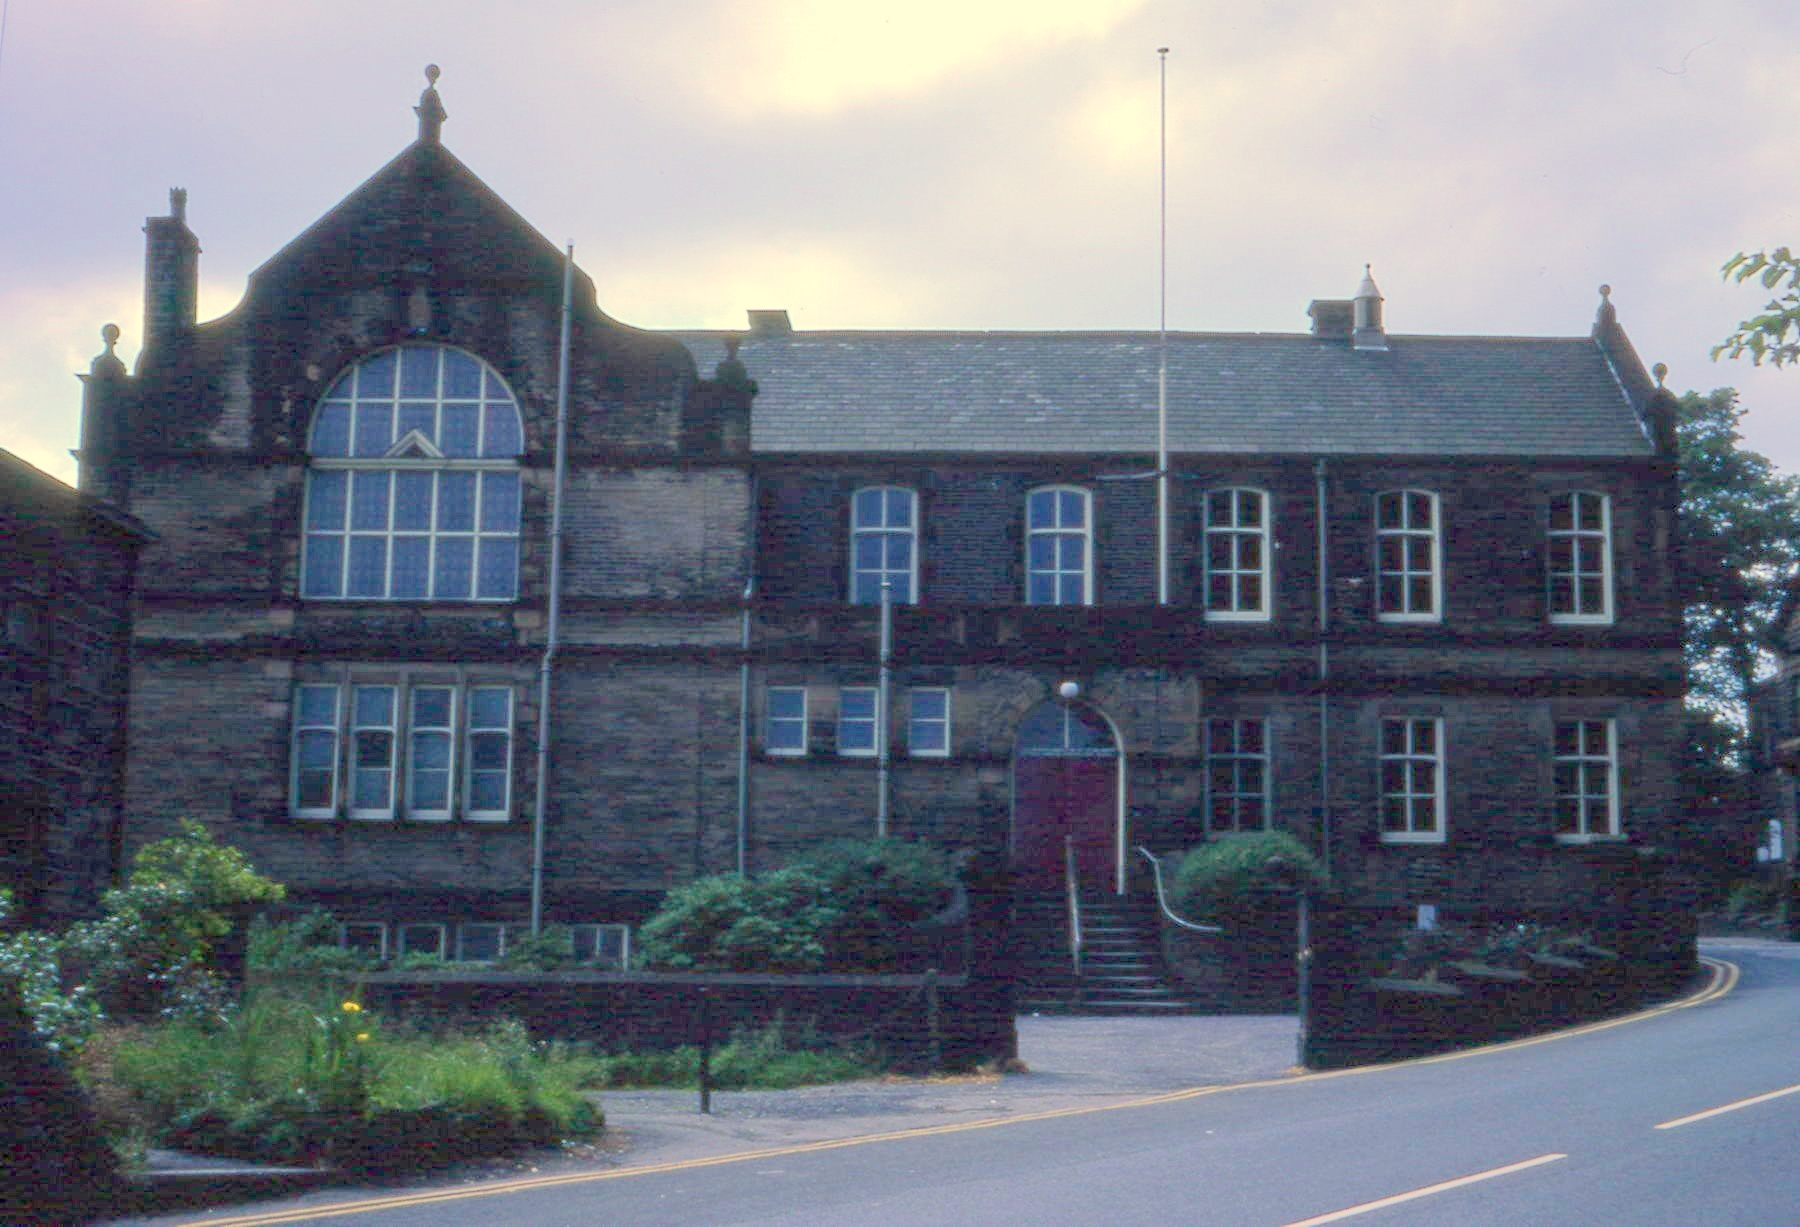 the former Oakworth Institute. Picture supplied by Andy Wade